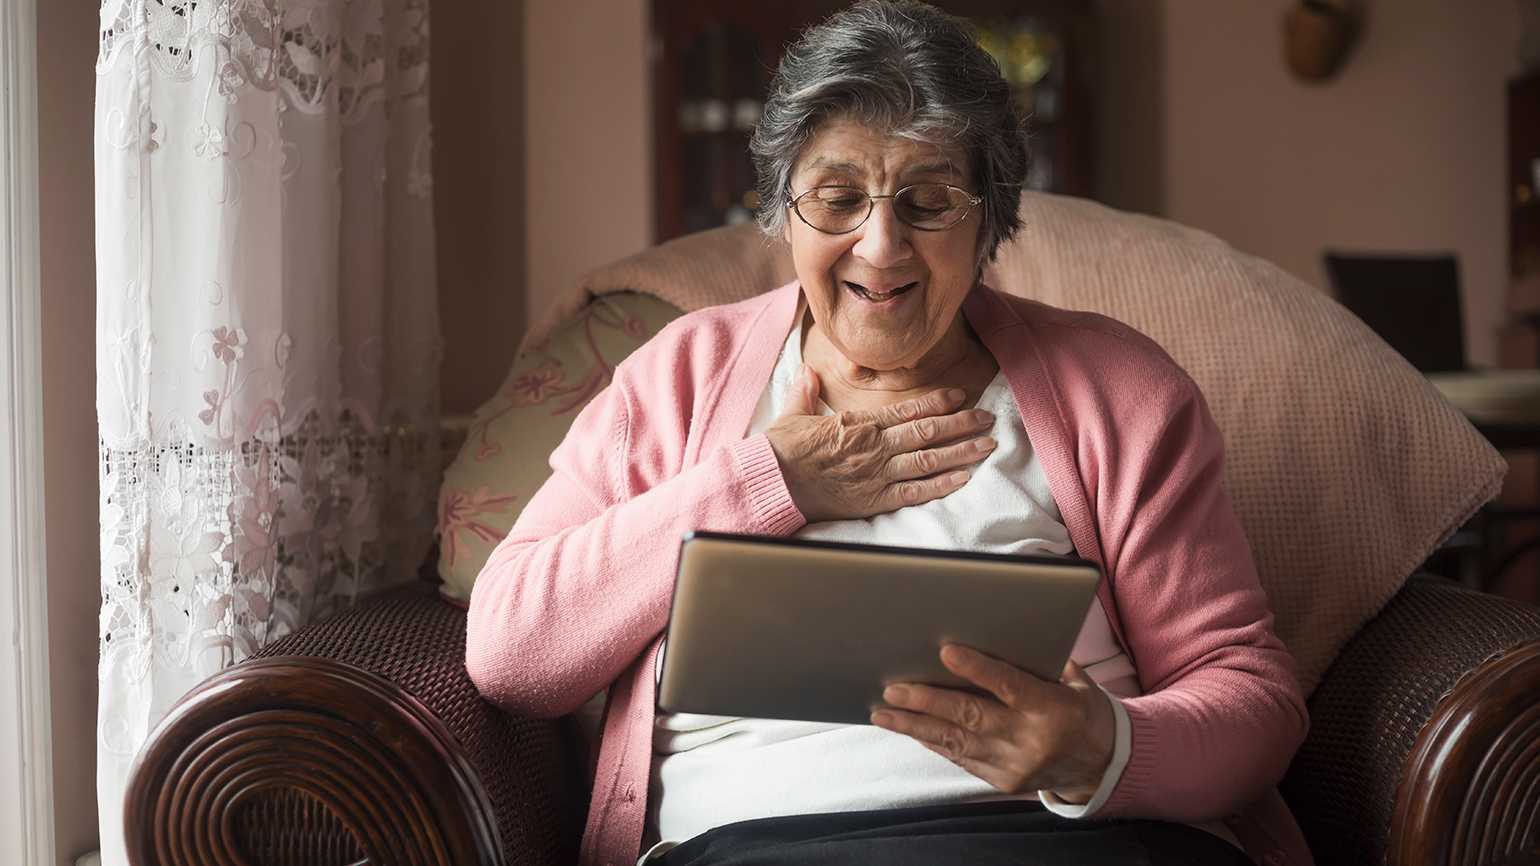 A senior women chats with family on her tablet